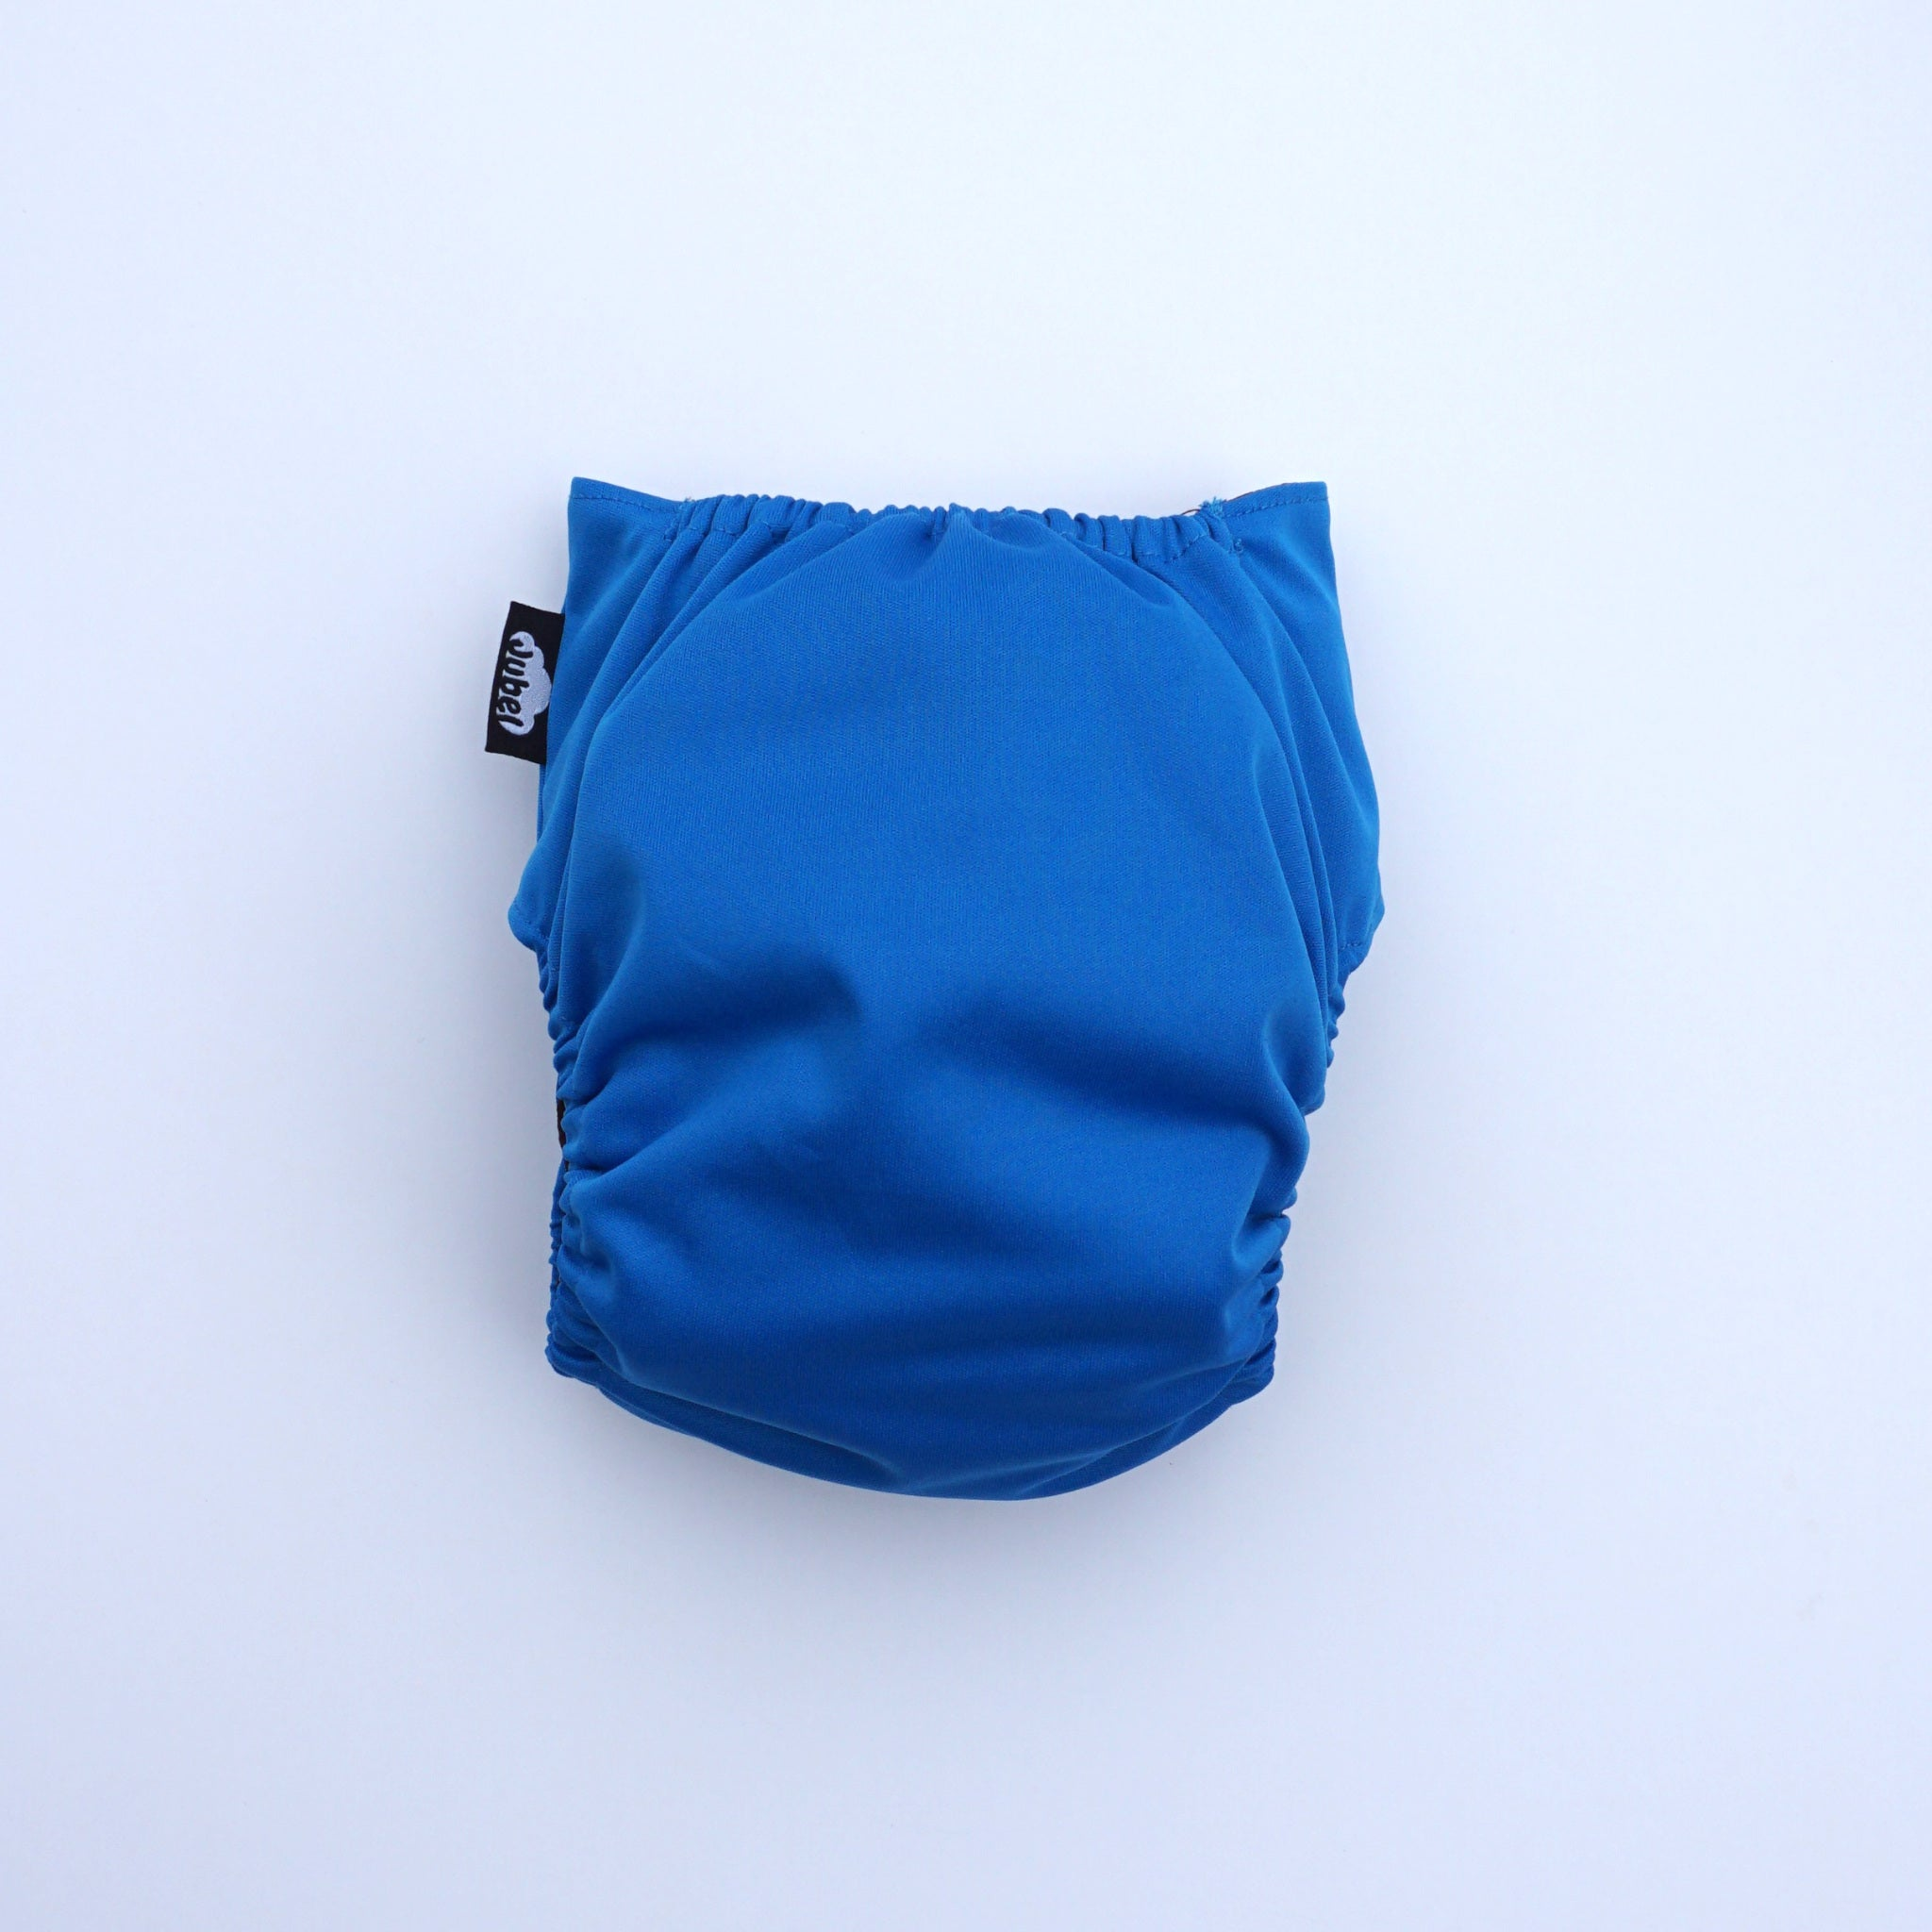 JUBEL Classic reusable nappy colour BLAU back view